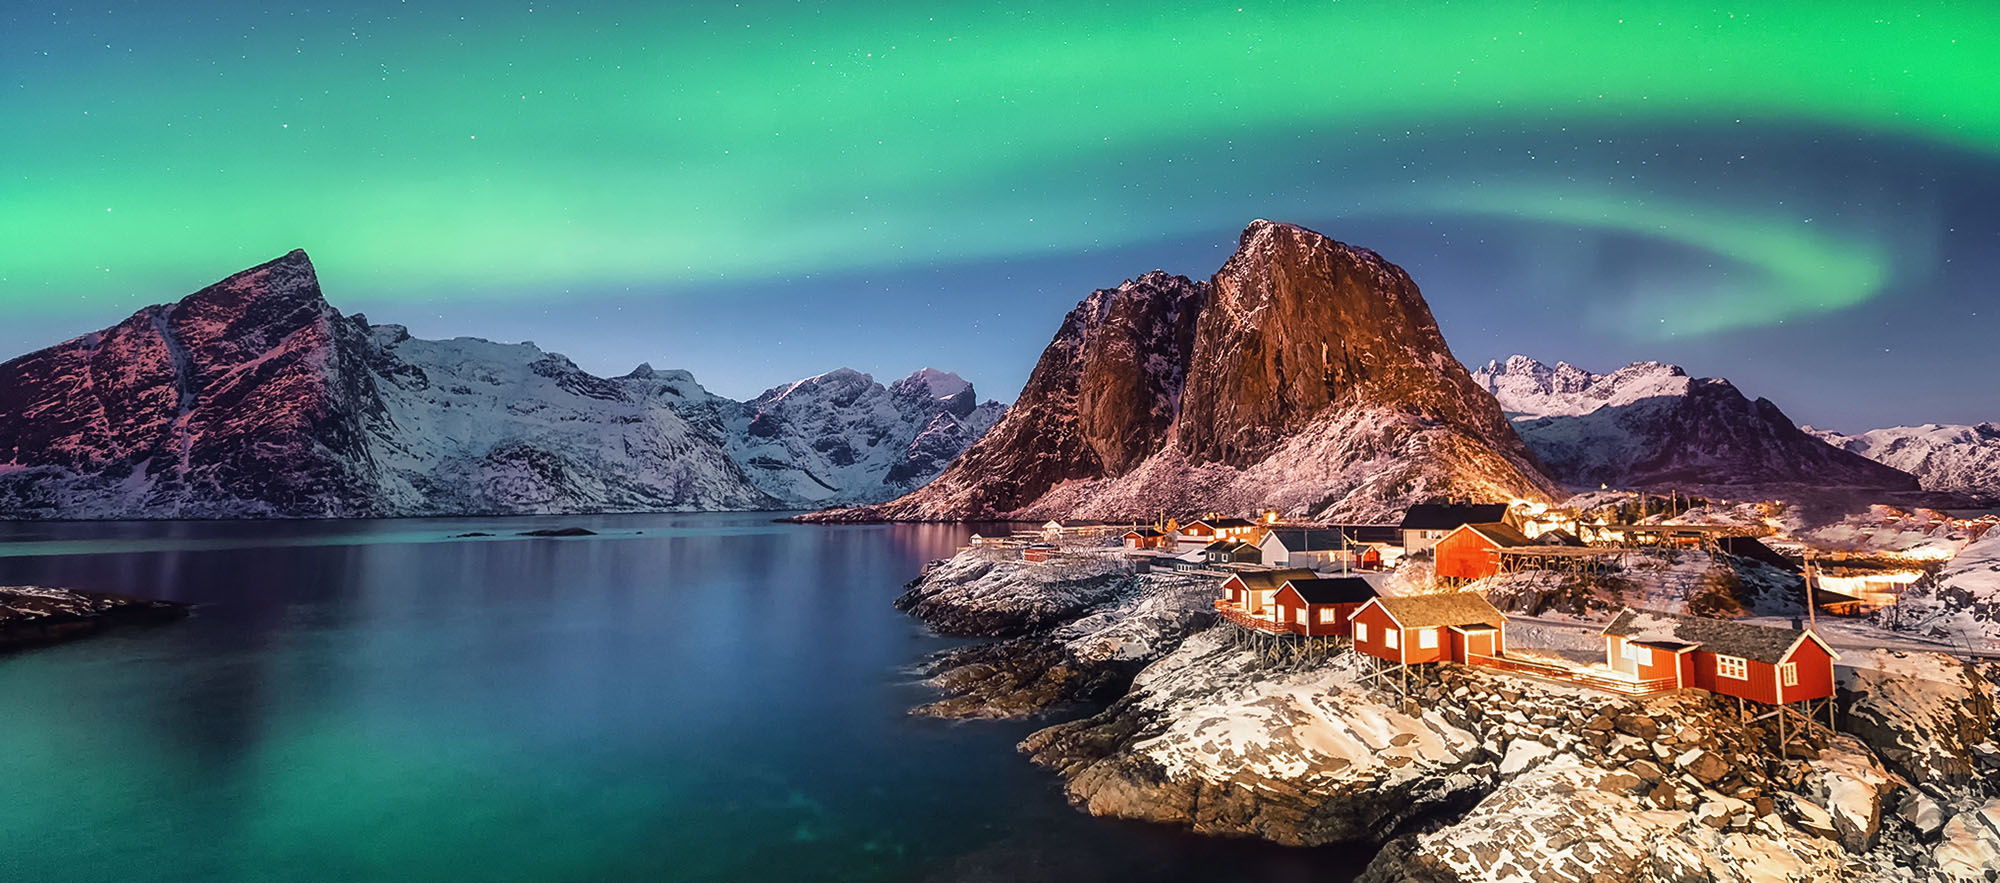 photography workshop in Lofoten - Norway, Inscappe photo tours